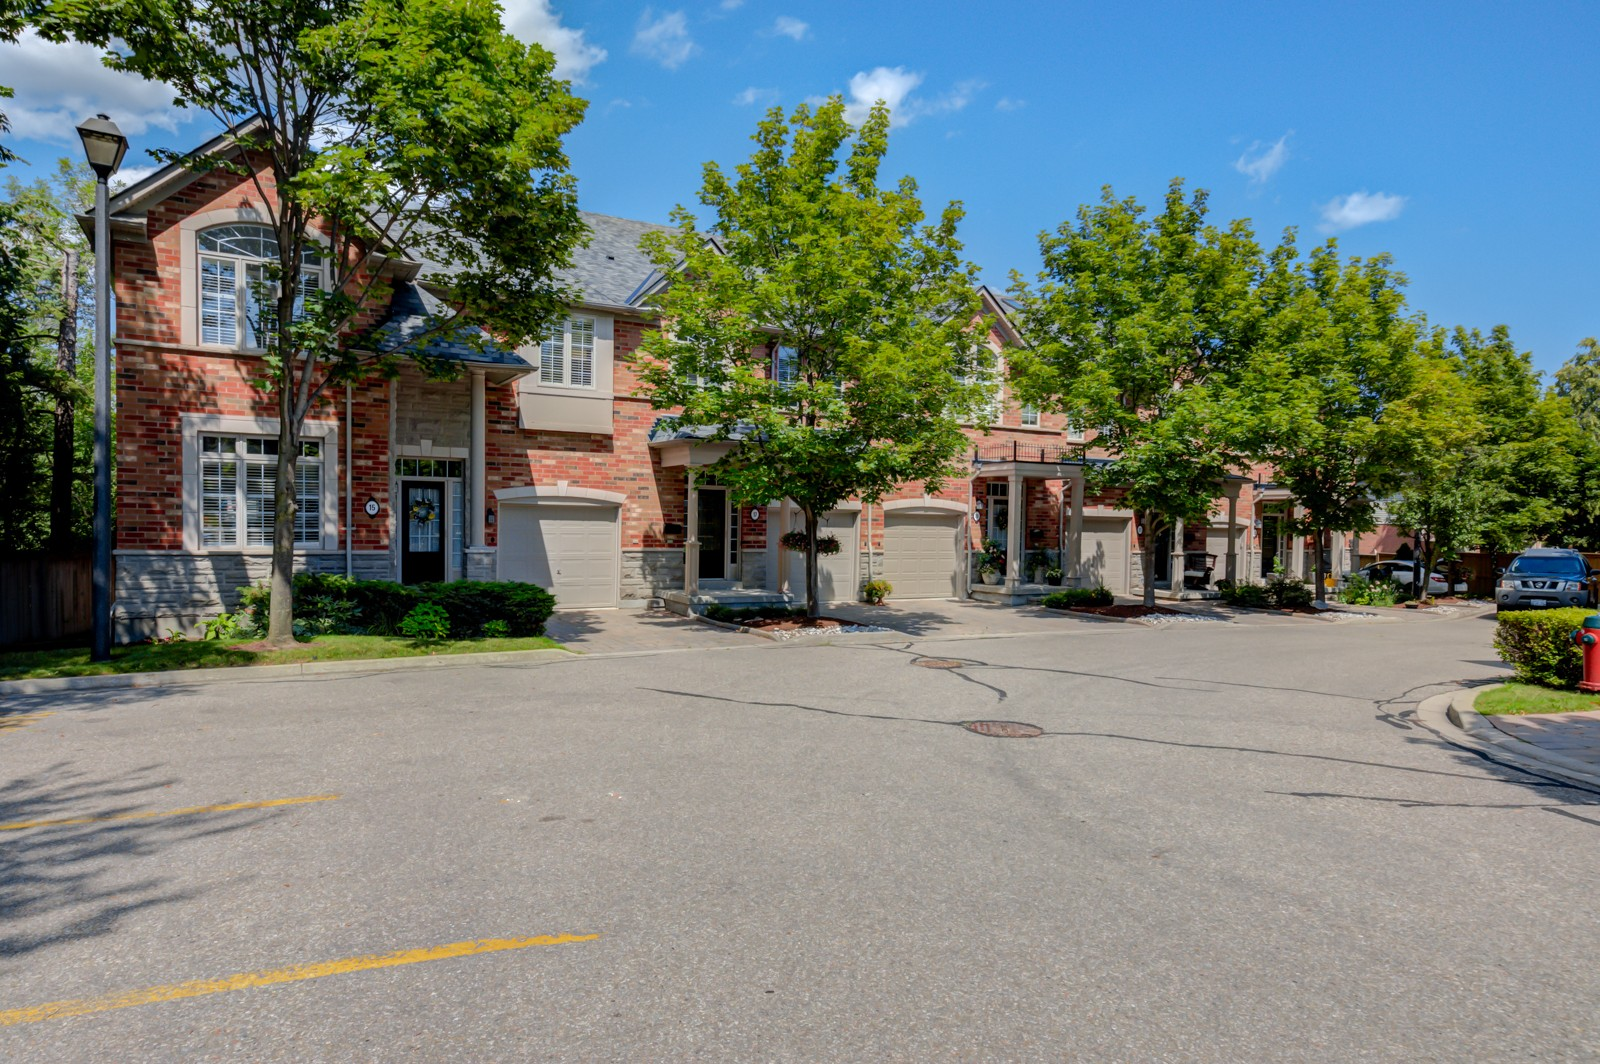 2355 Fifth Line West Townhouses at 2355 Fifth Line W, Mississauga 0